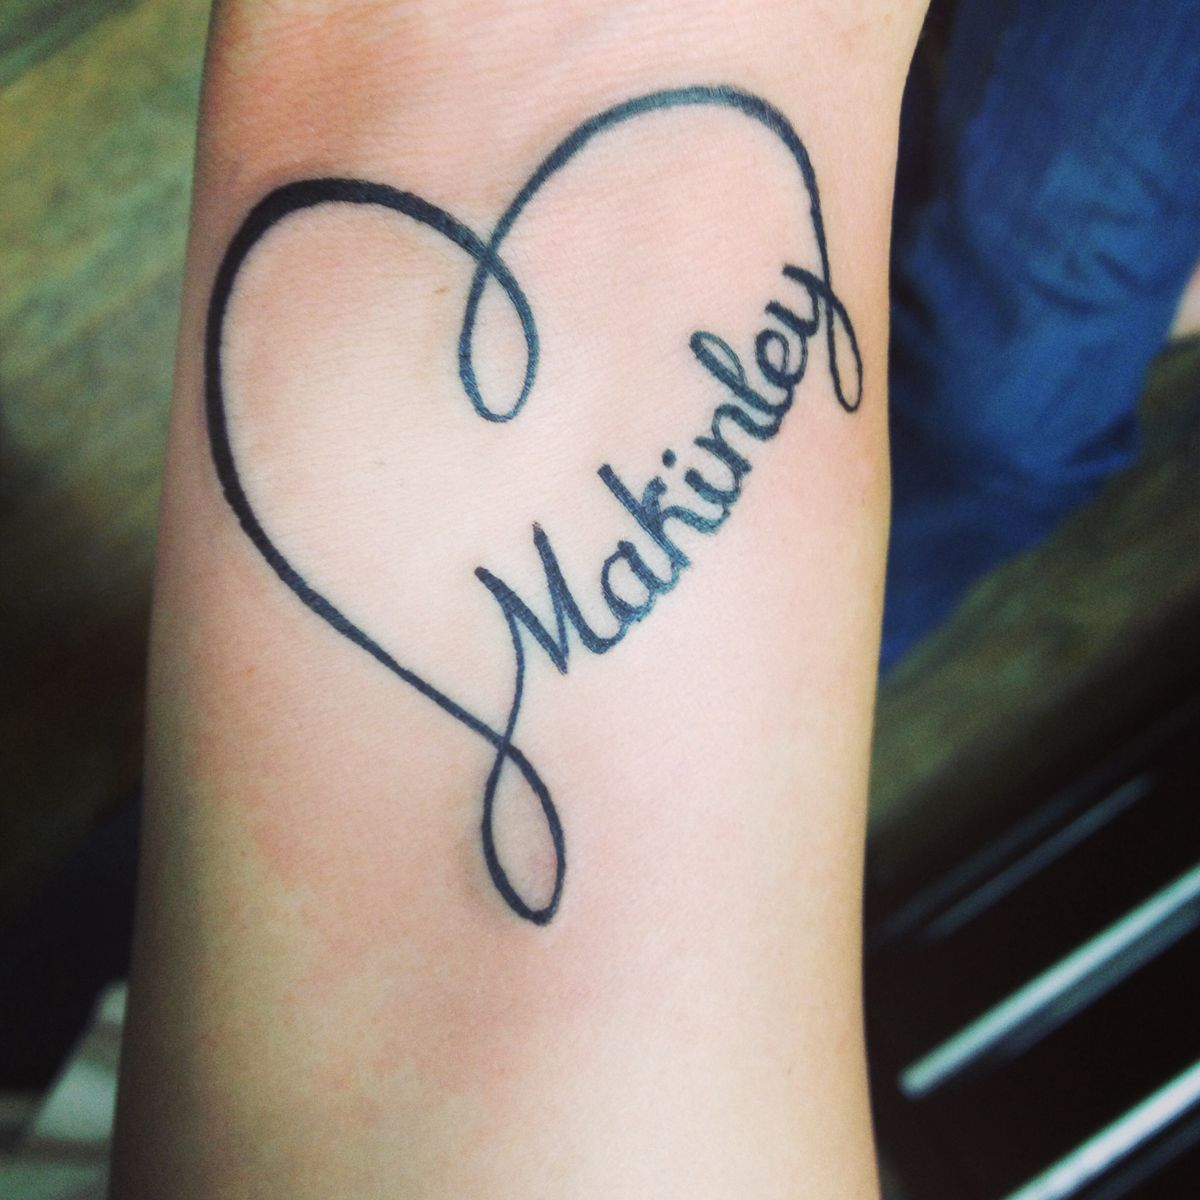 Tattoo Heart tattoos with names, Tattoos with kids names